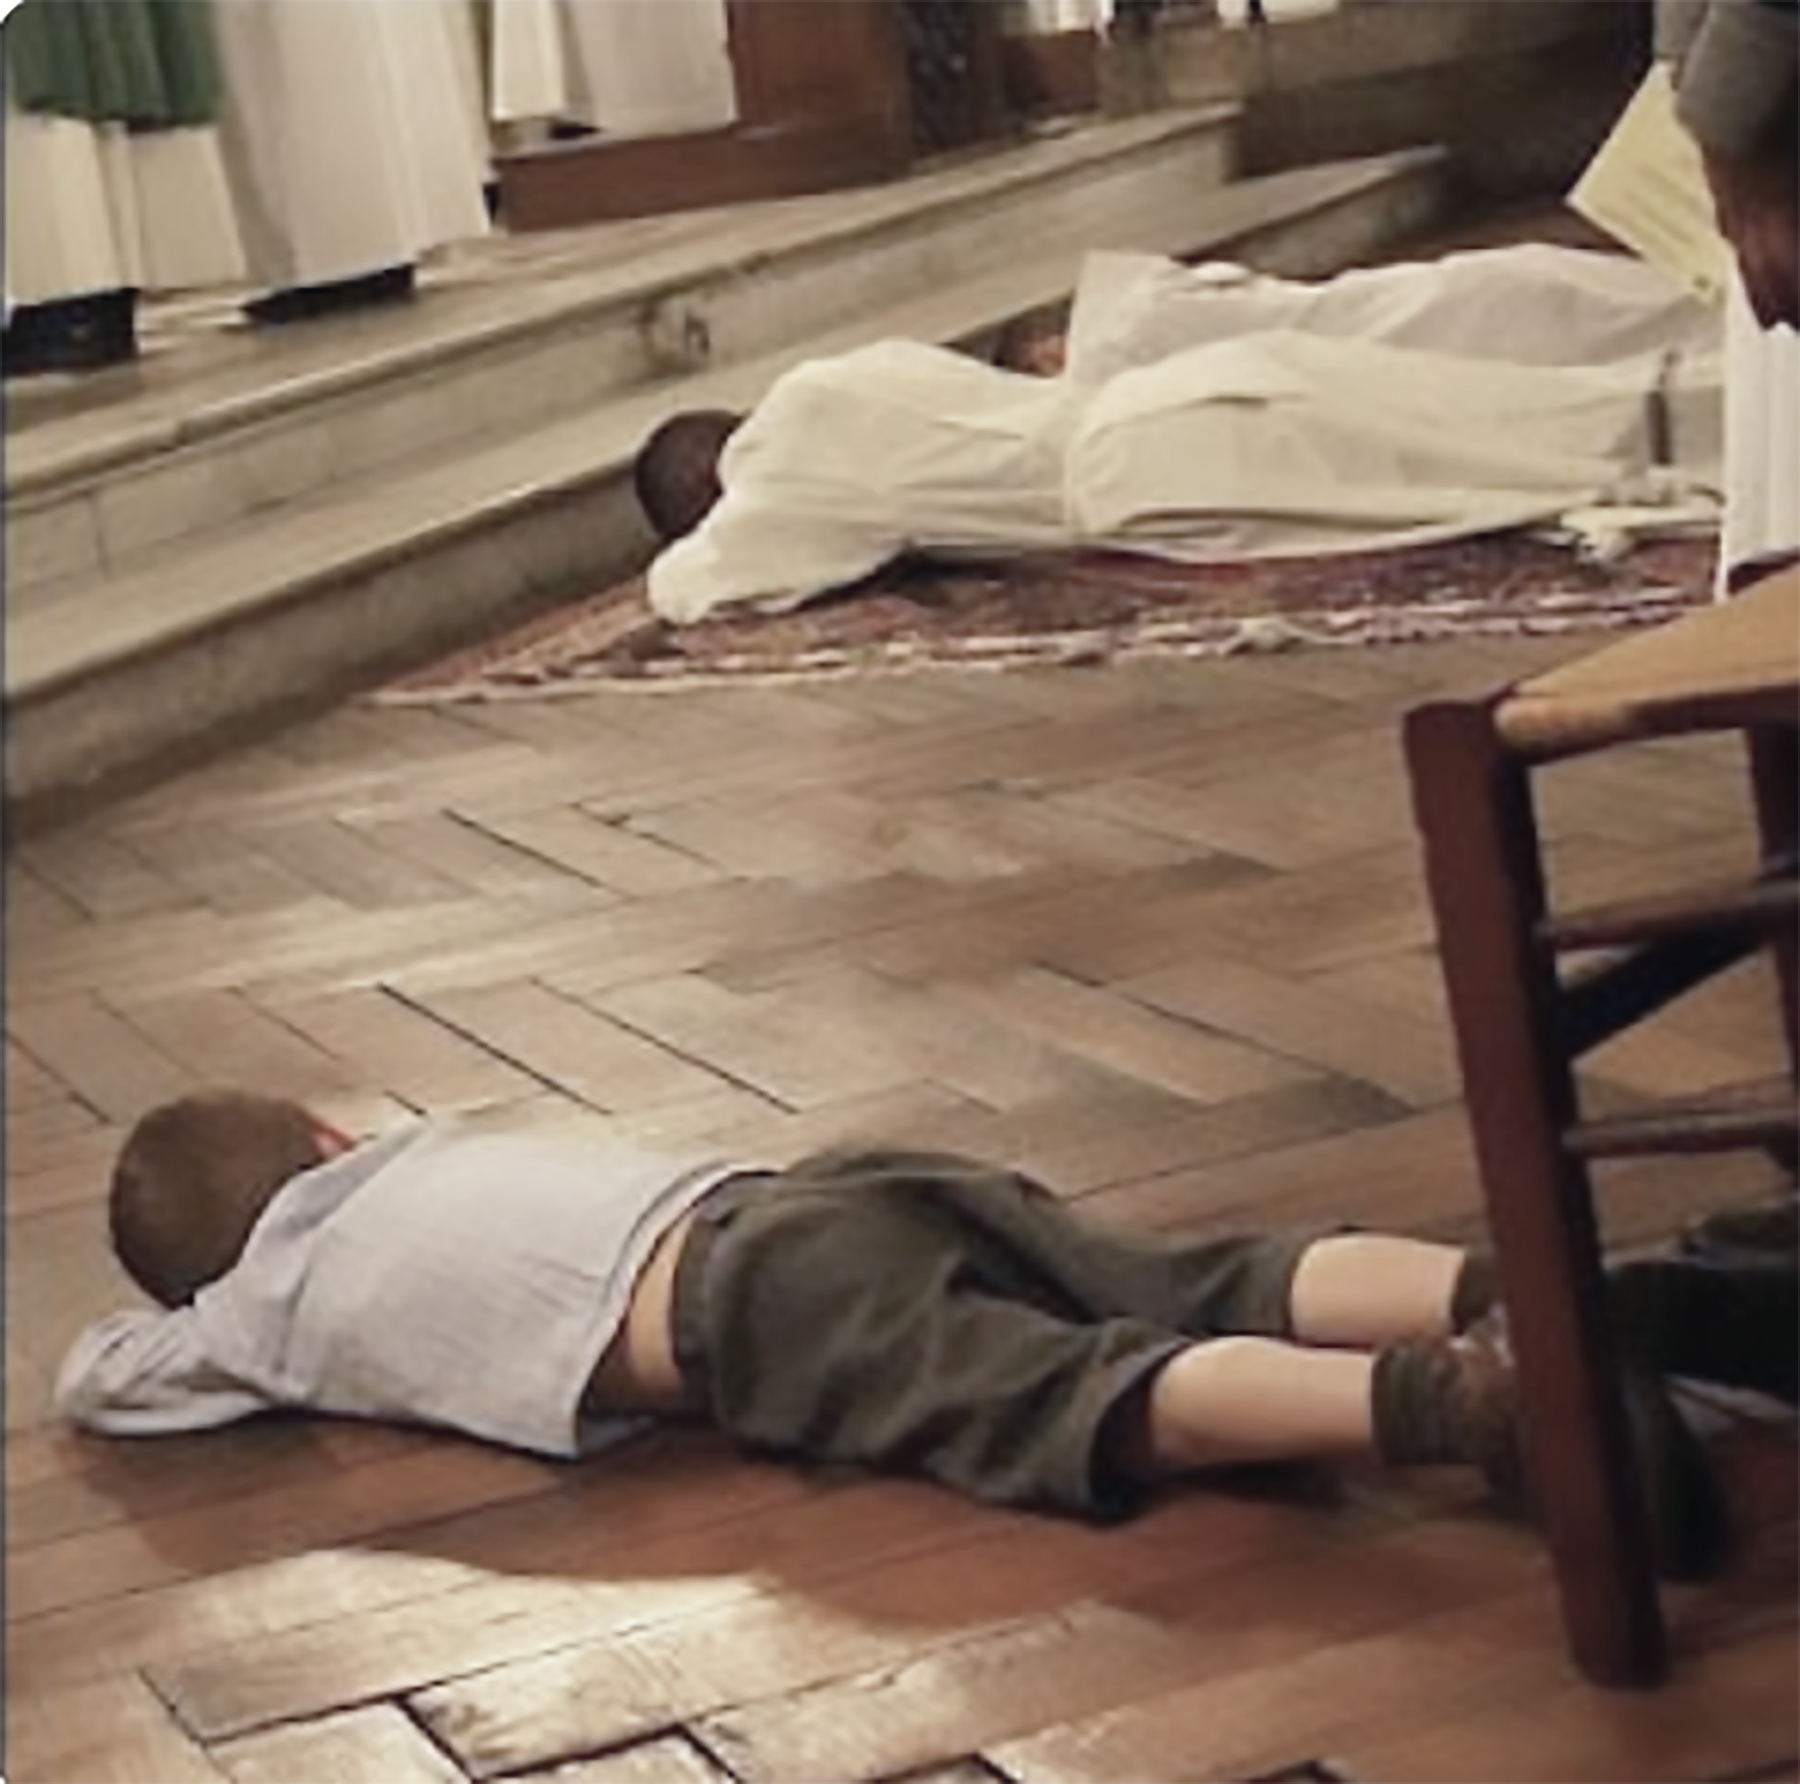 child laying down next to priest ordination